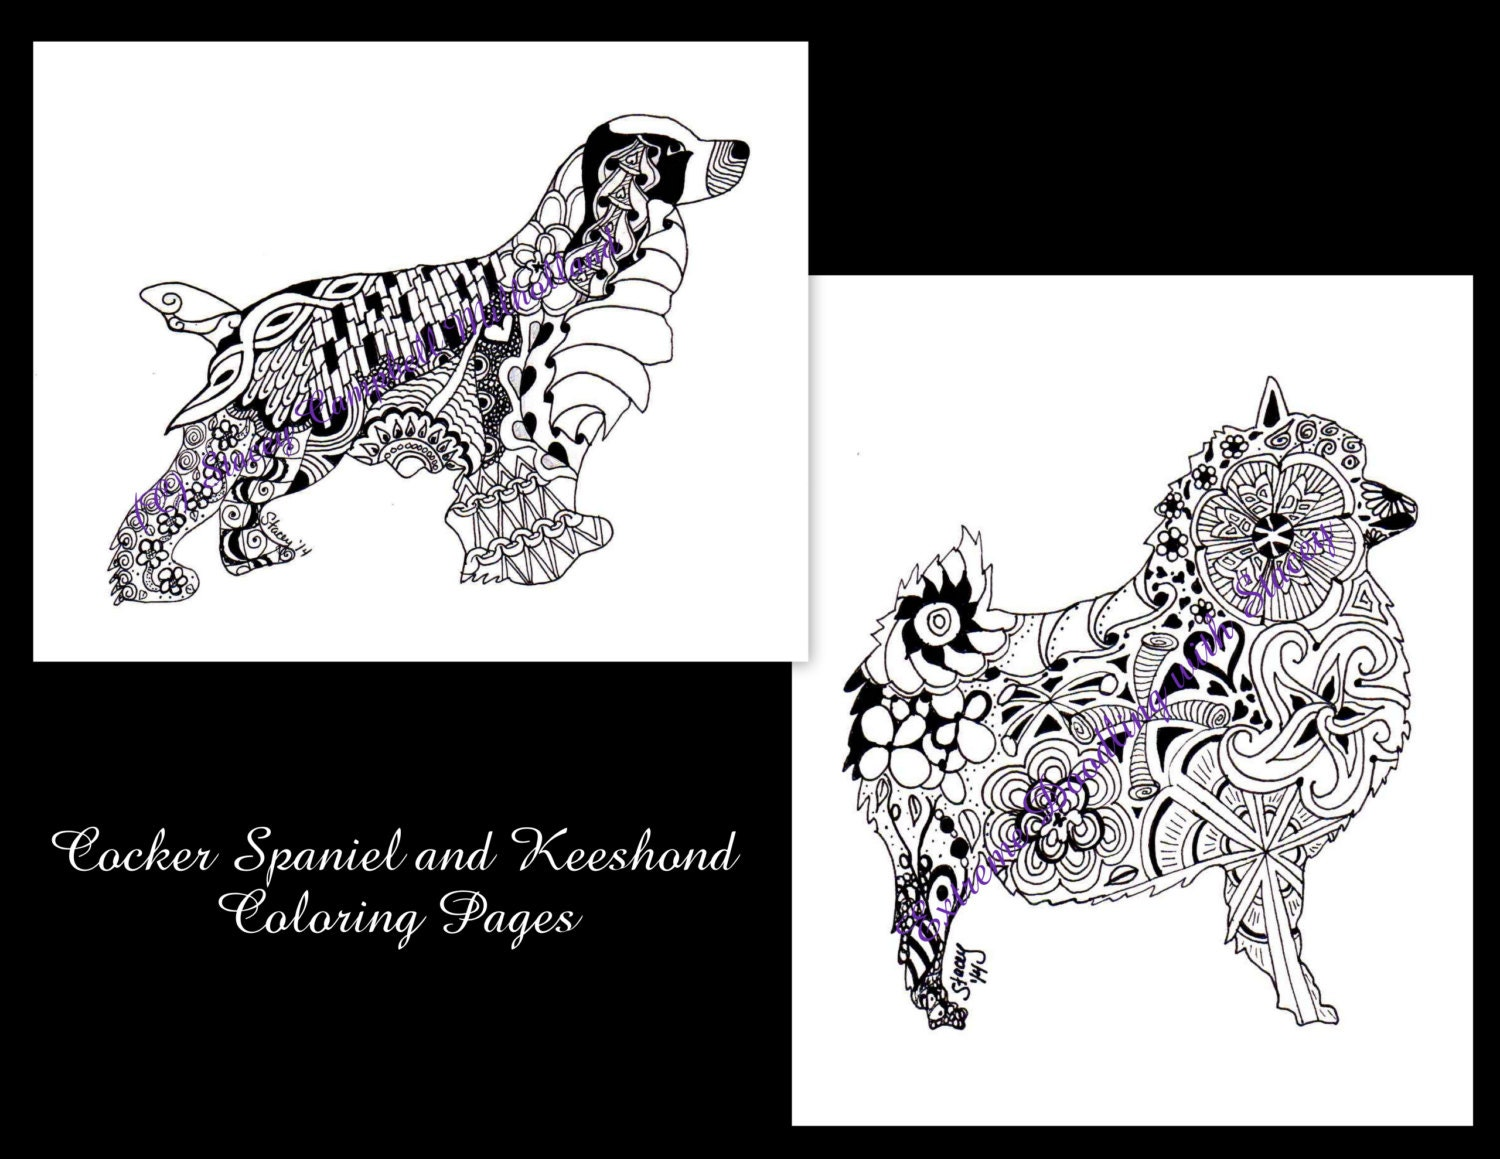 cocker spaniel and keeshond coloring pages digital download